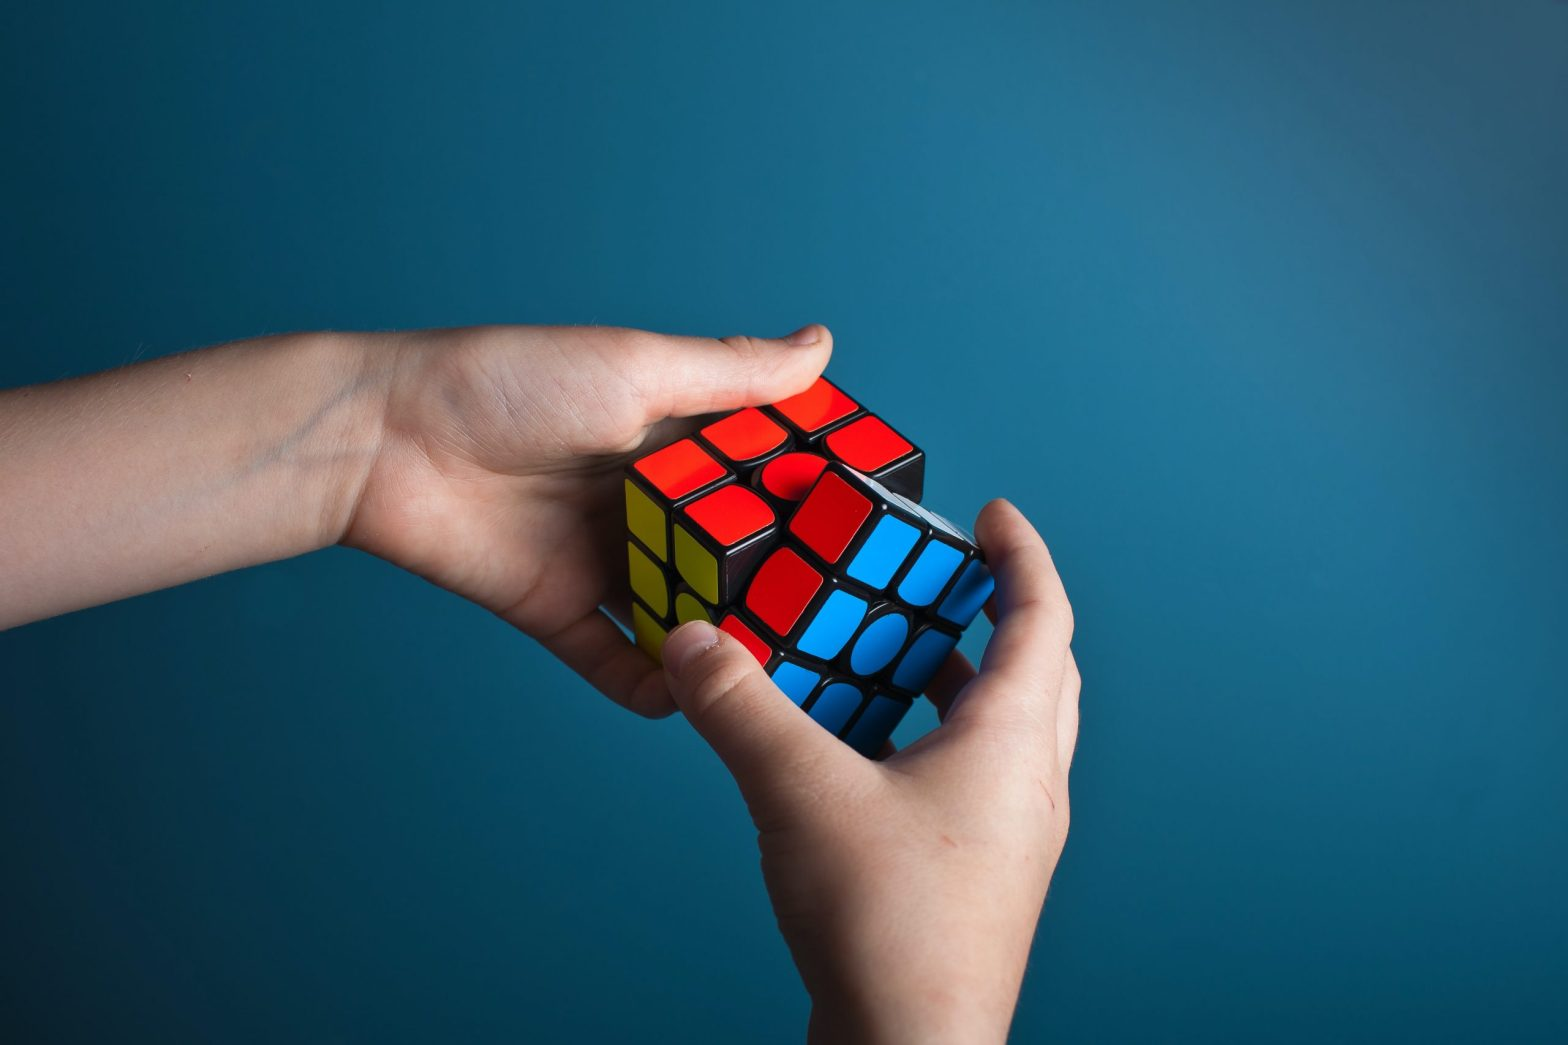 Two hands holding a Rubik's Cube